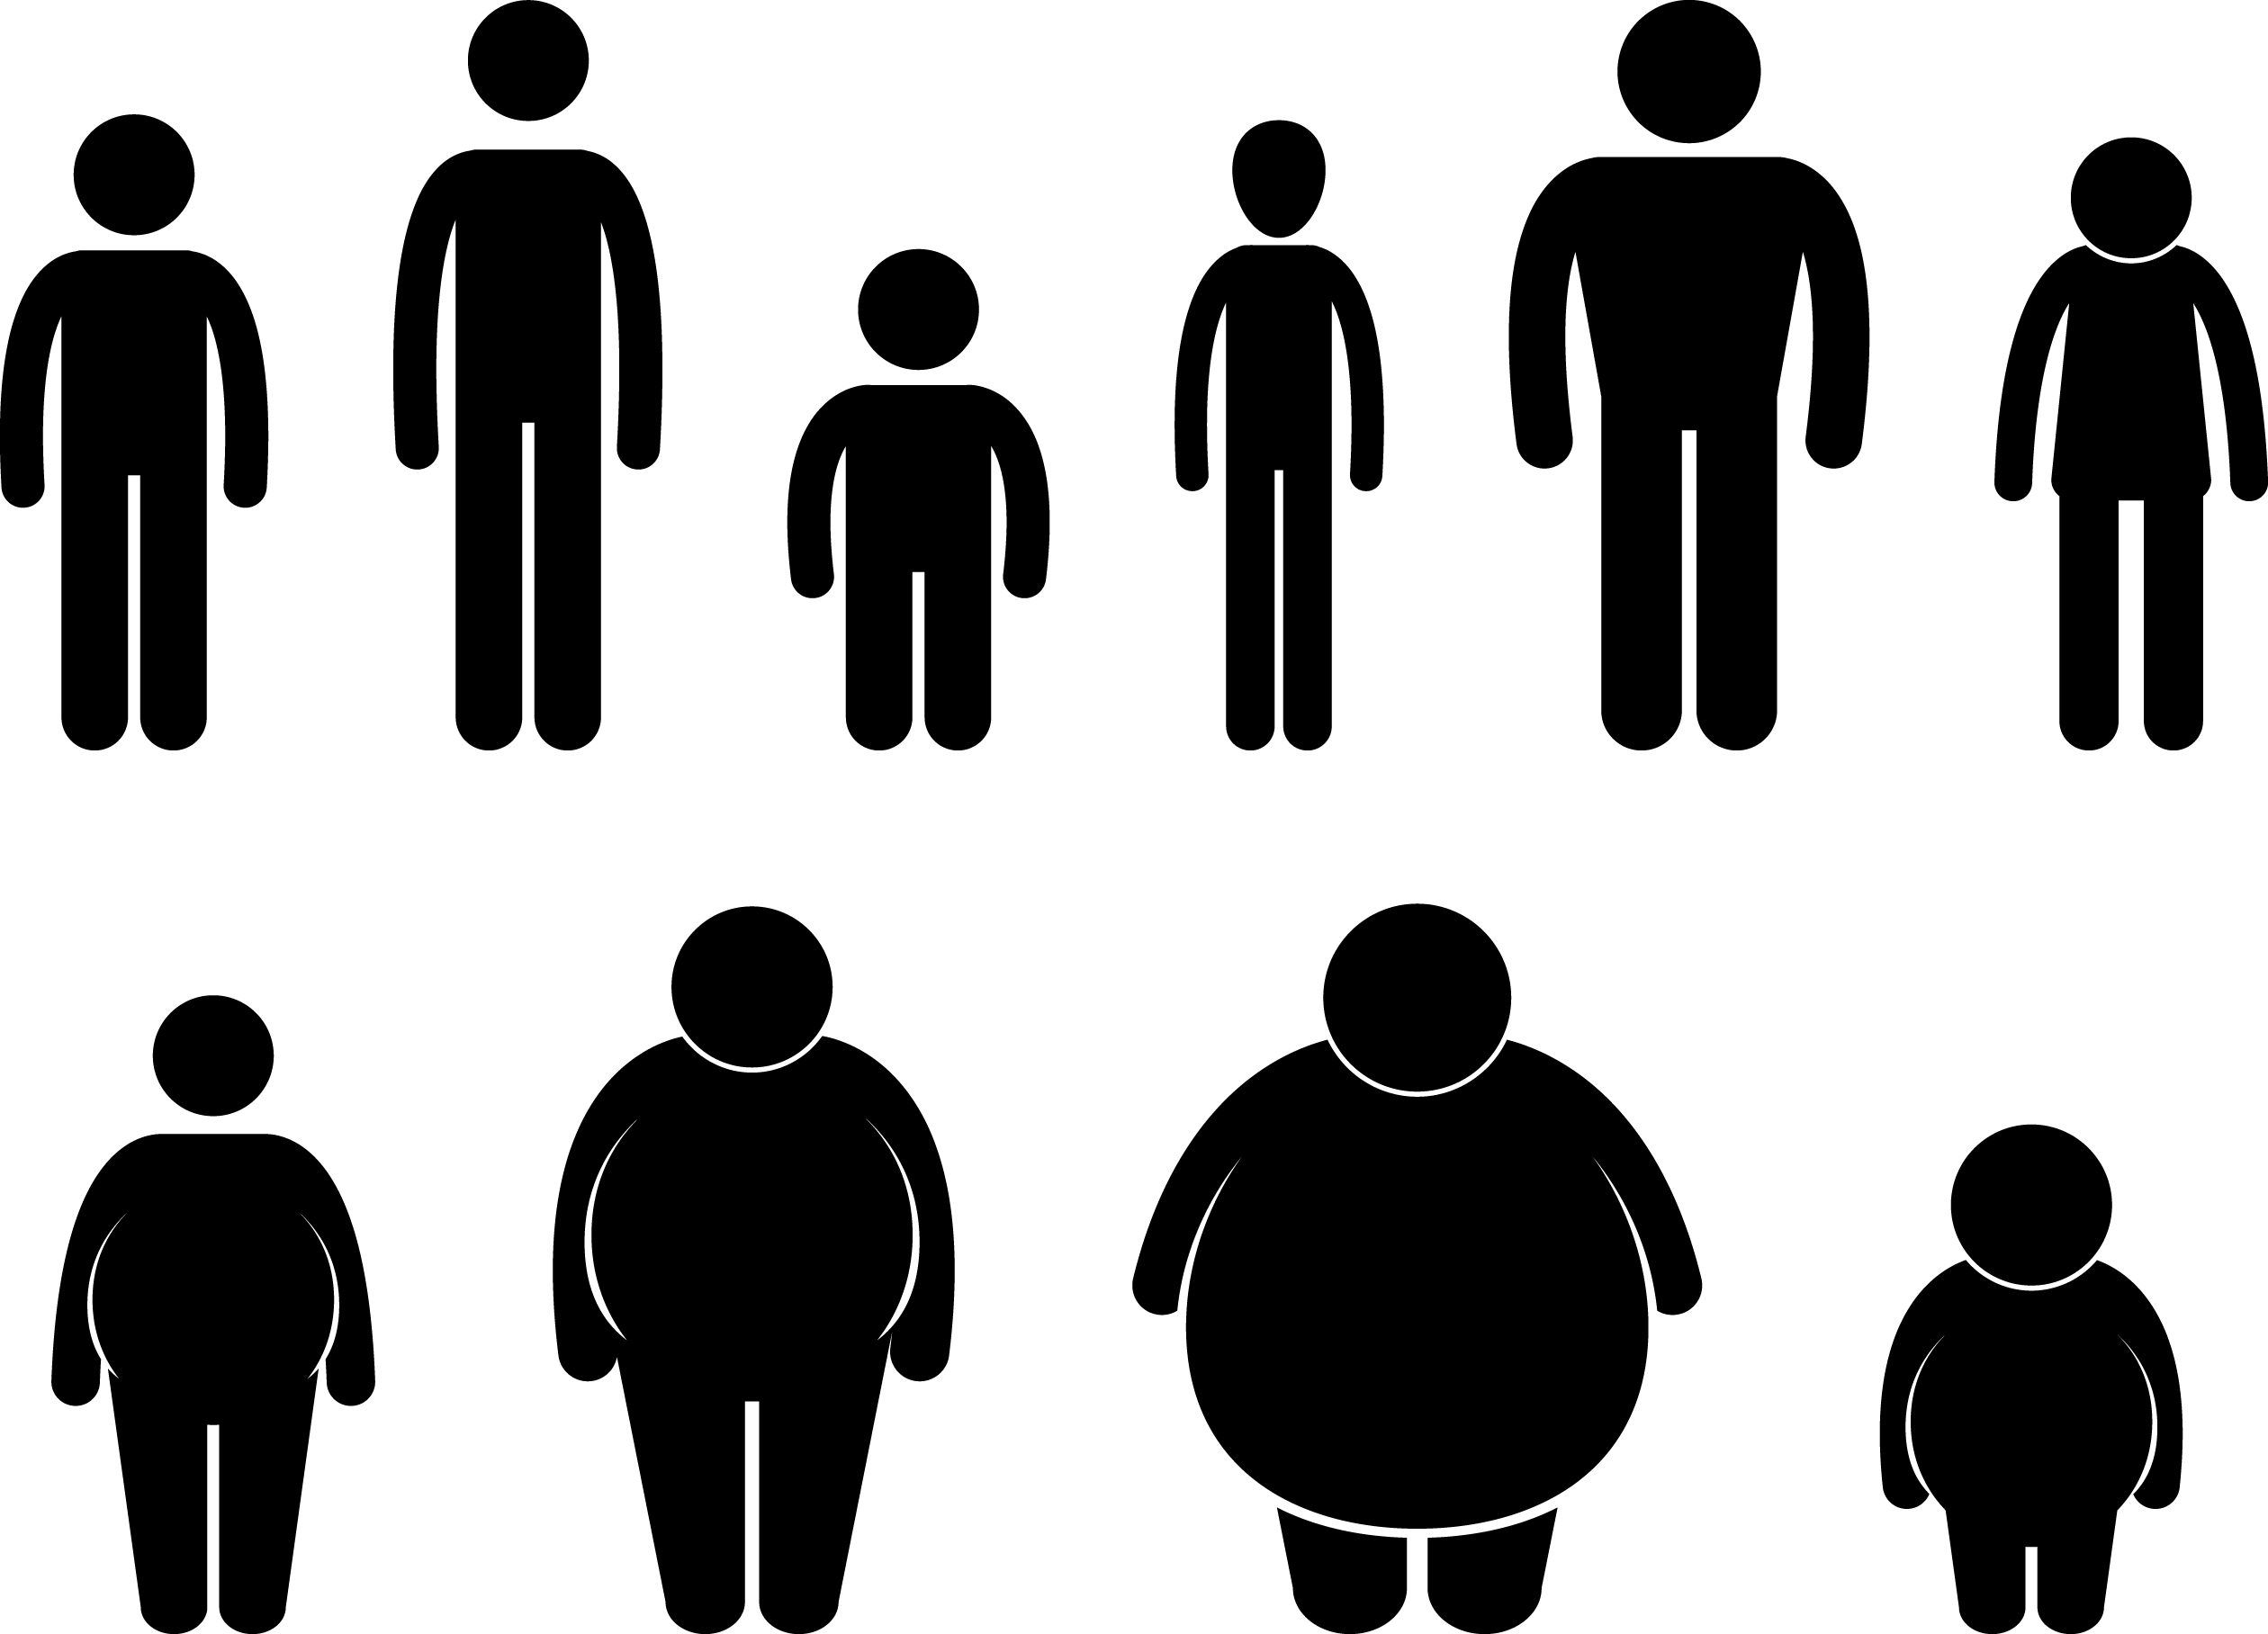 Fat people silhouette at. Witch clipart obese